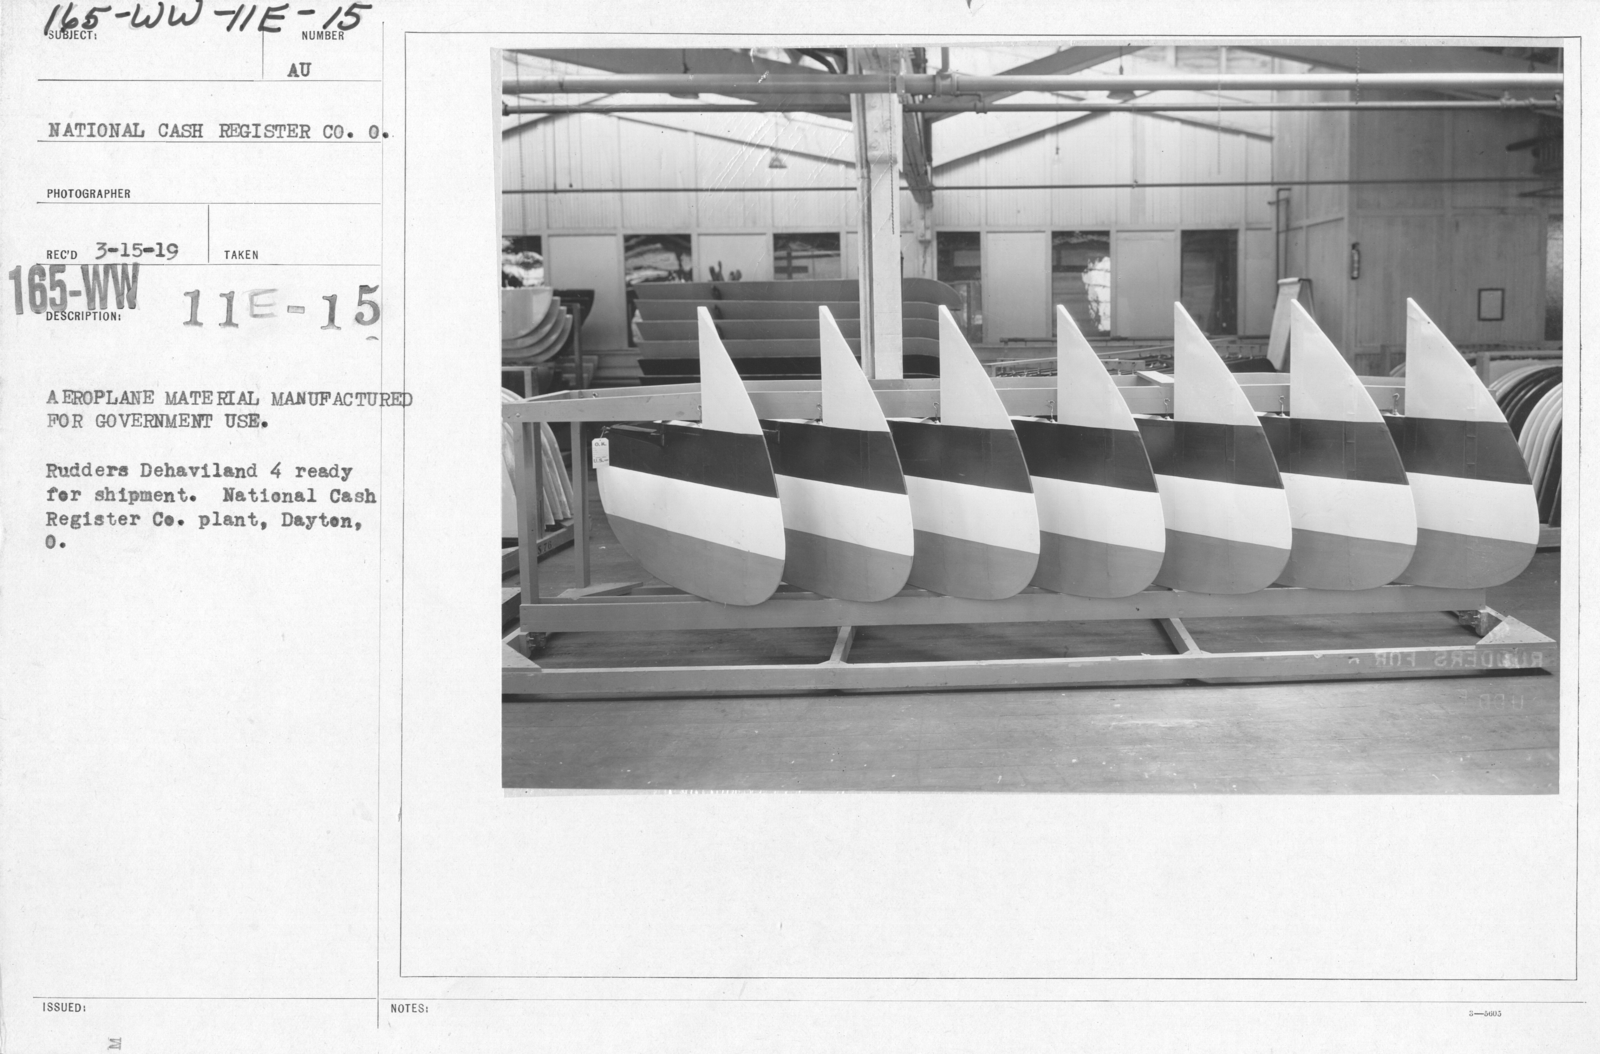 Airplanes - Manufacturing Plants - Aeroplane material manufactured for government use. Rudders De Haviland 4 ready for shipment. National Cash Register Co. plant, Dayton, O